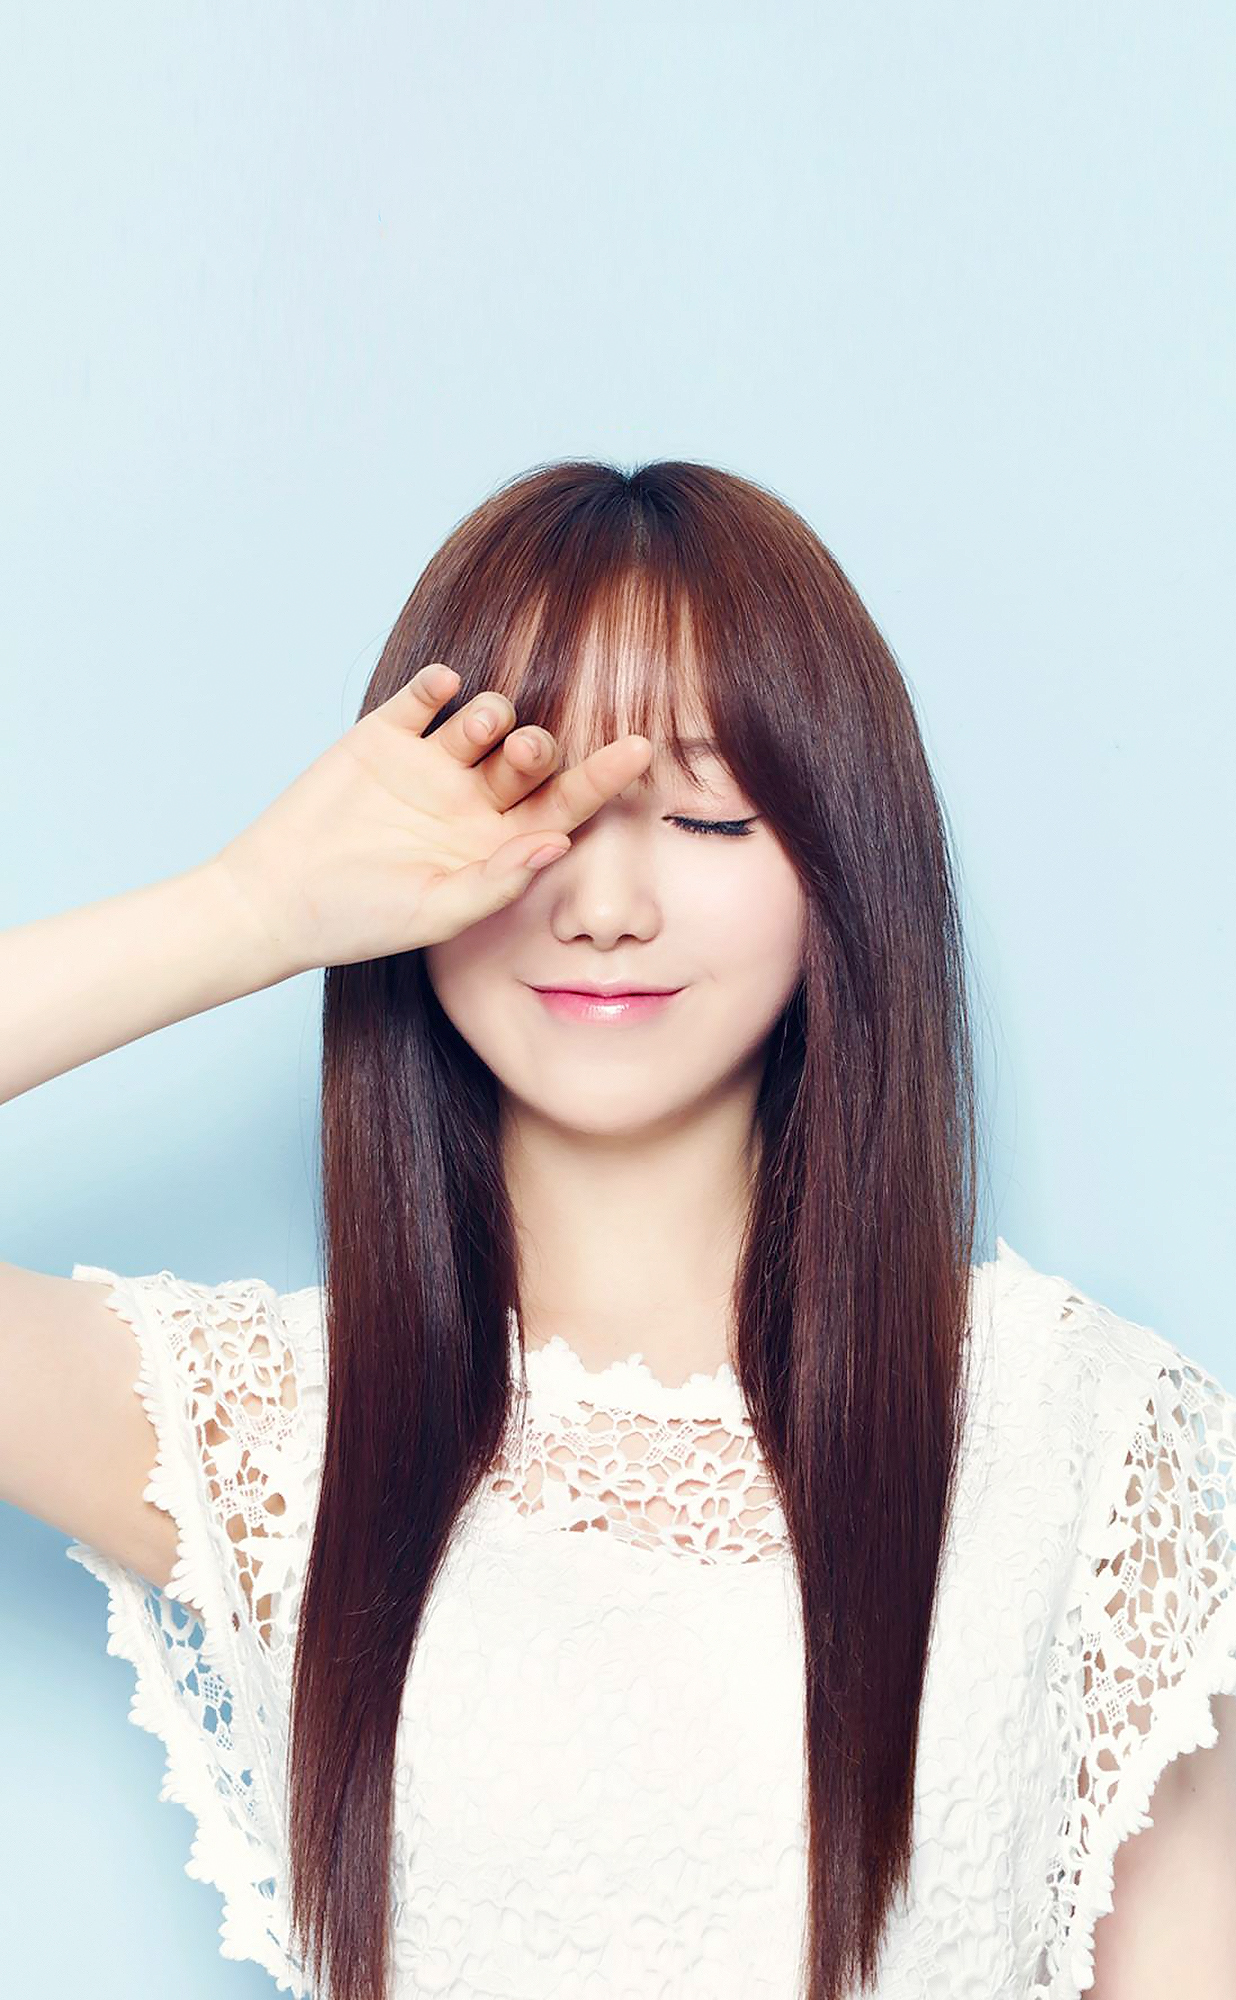 lovelyz immagini lovelyz kei concept foto for lovelyz8 hd rh it fanpop com